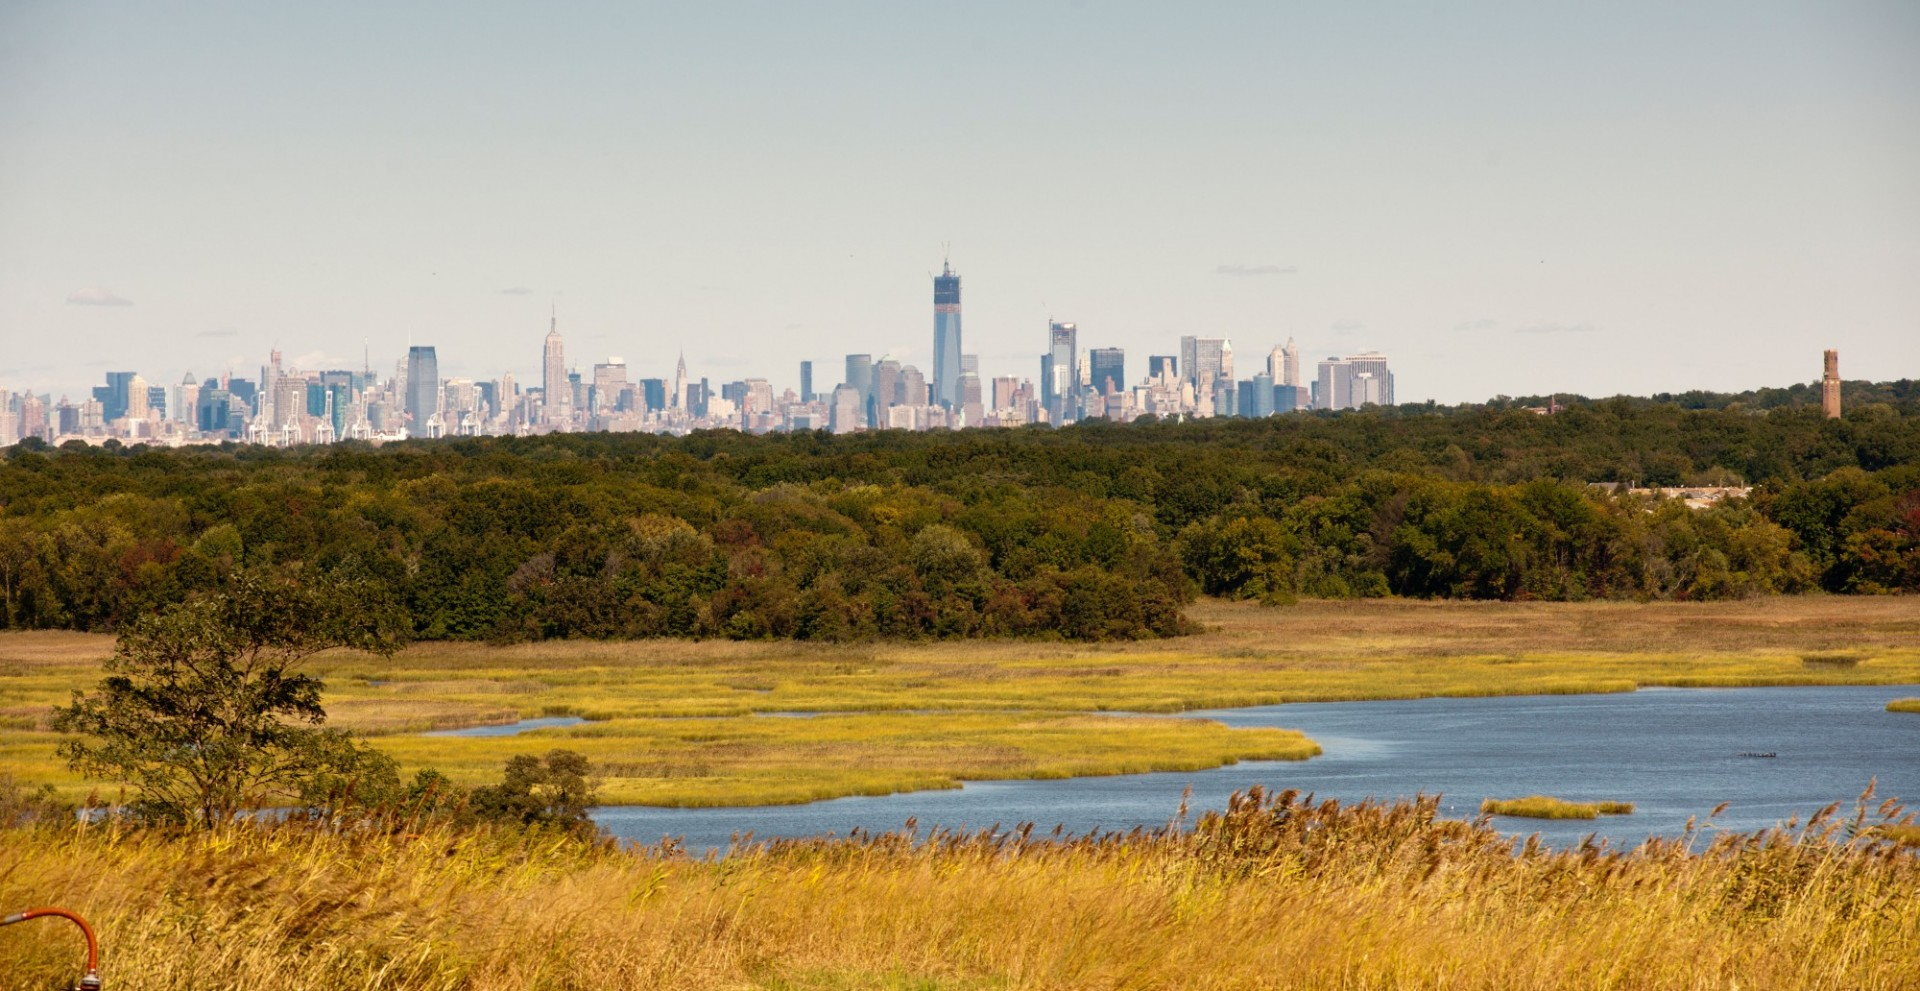 View of a park on Staten Island with the New York City skyline in the back